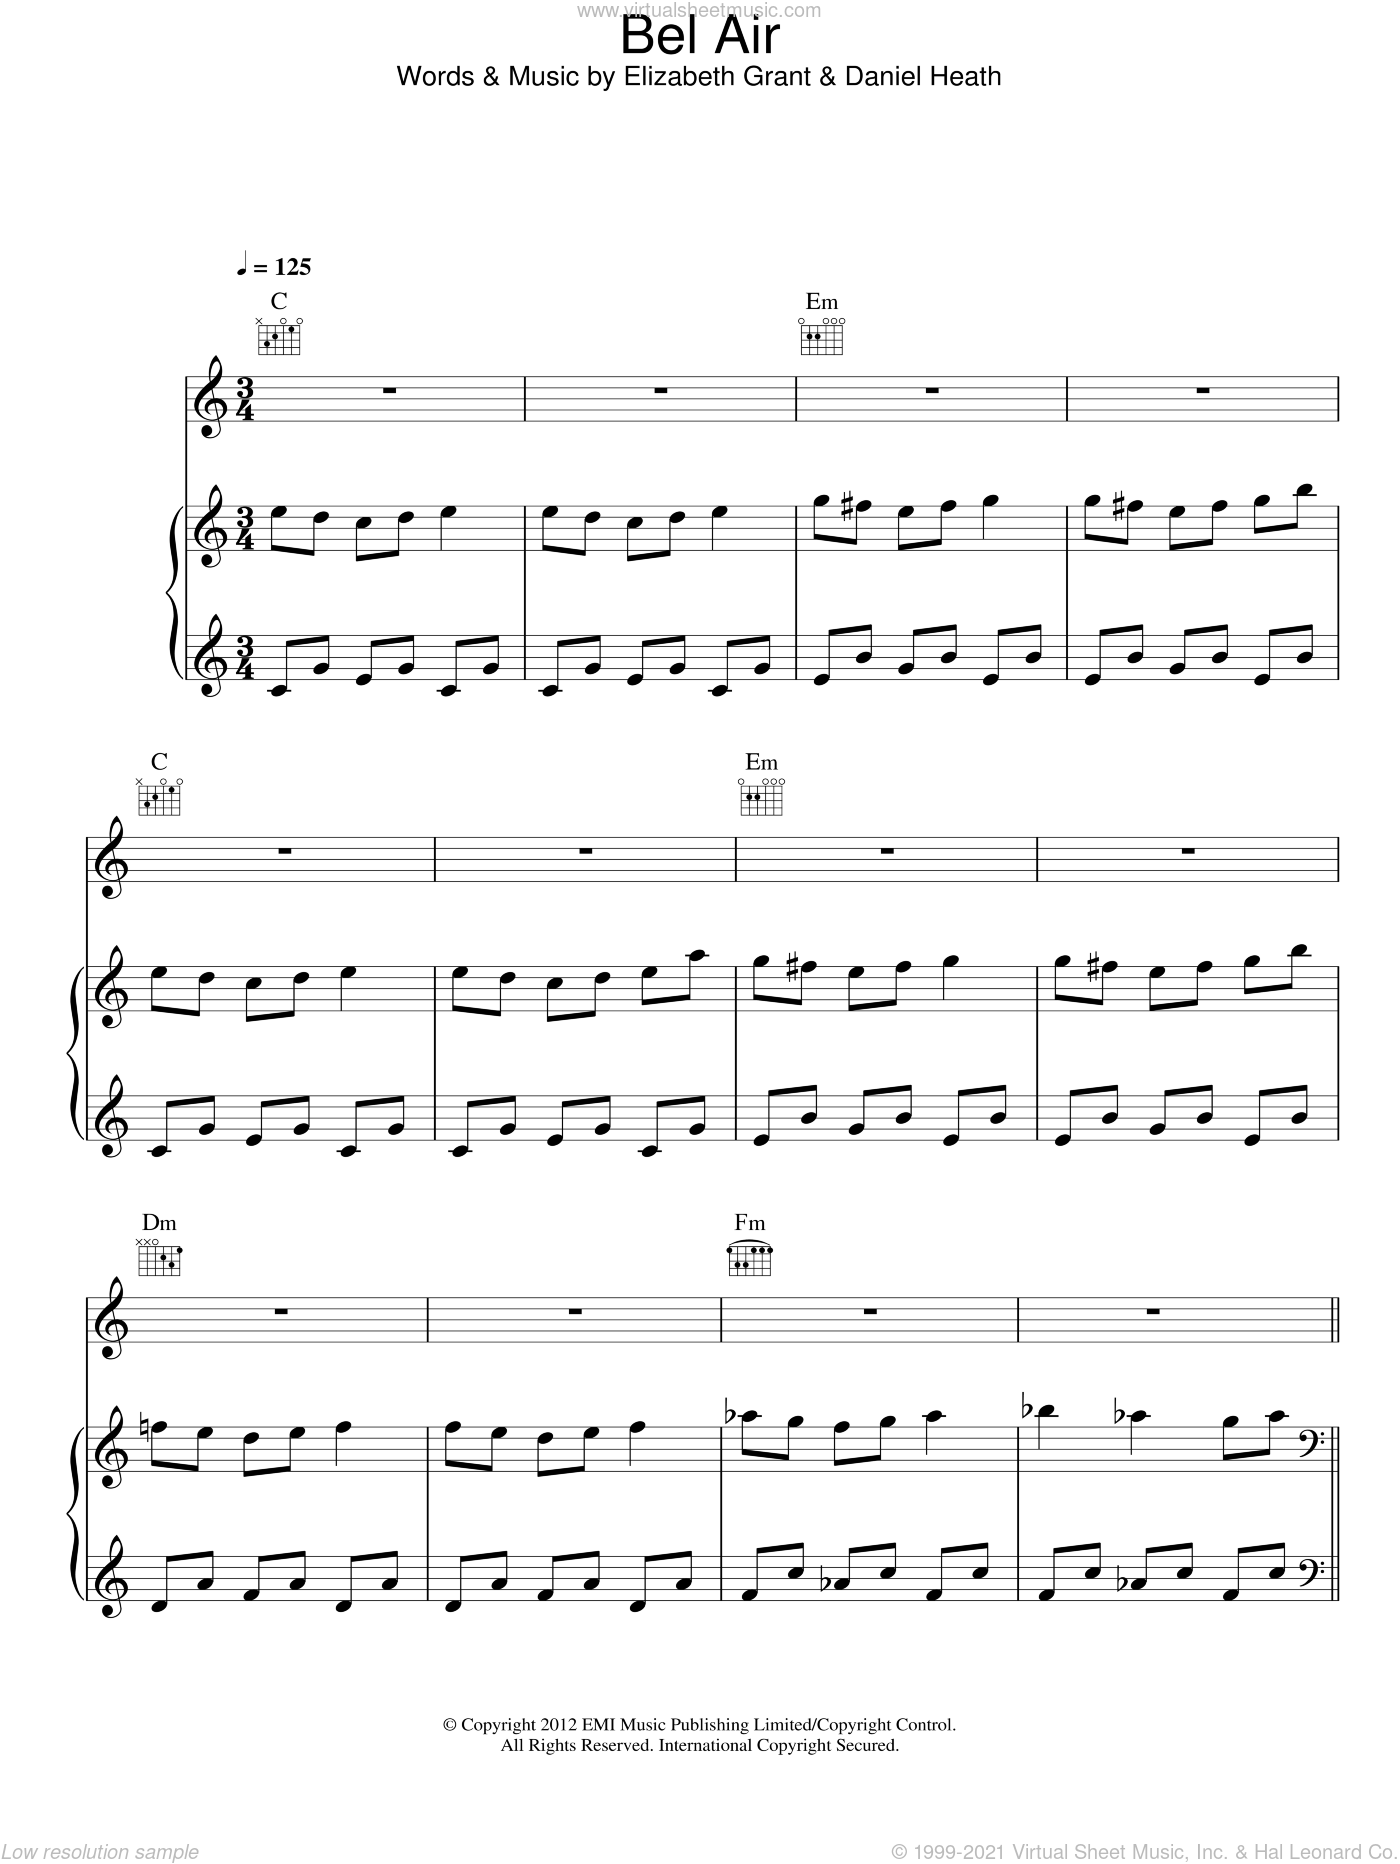 Bel Air sheet music for voice, piano or guitar by Elizabeth Grant